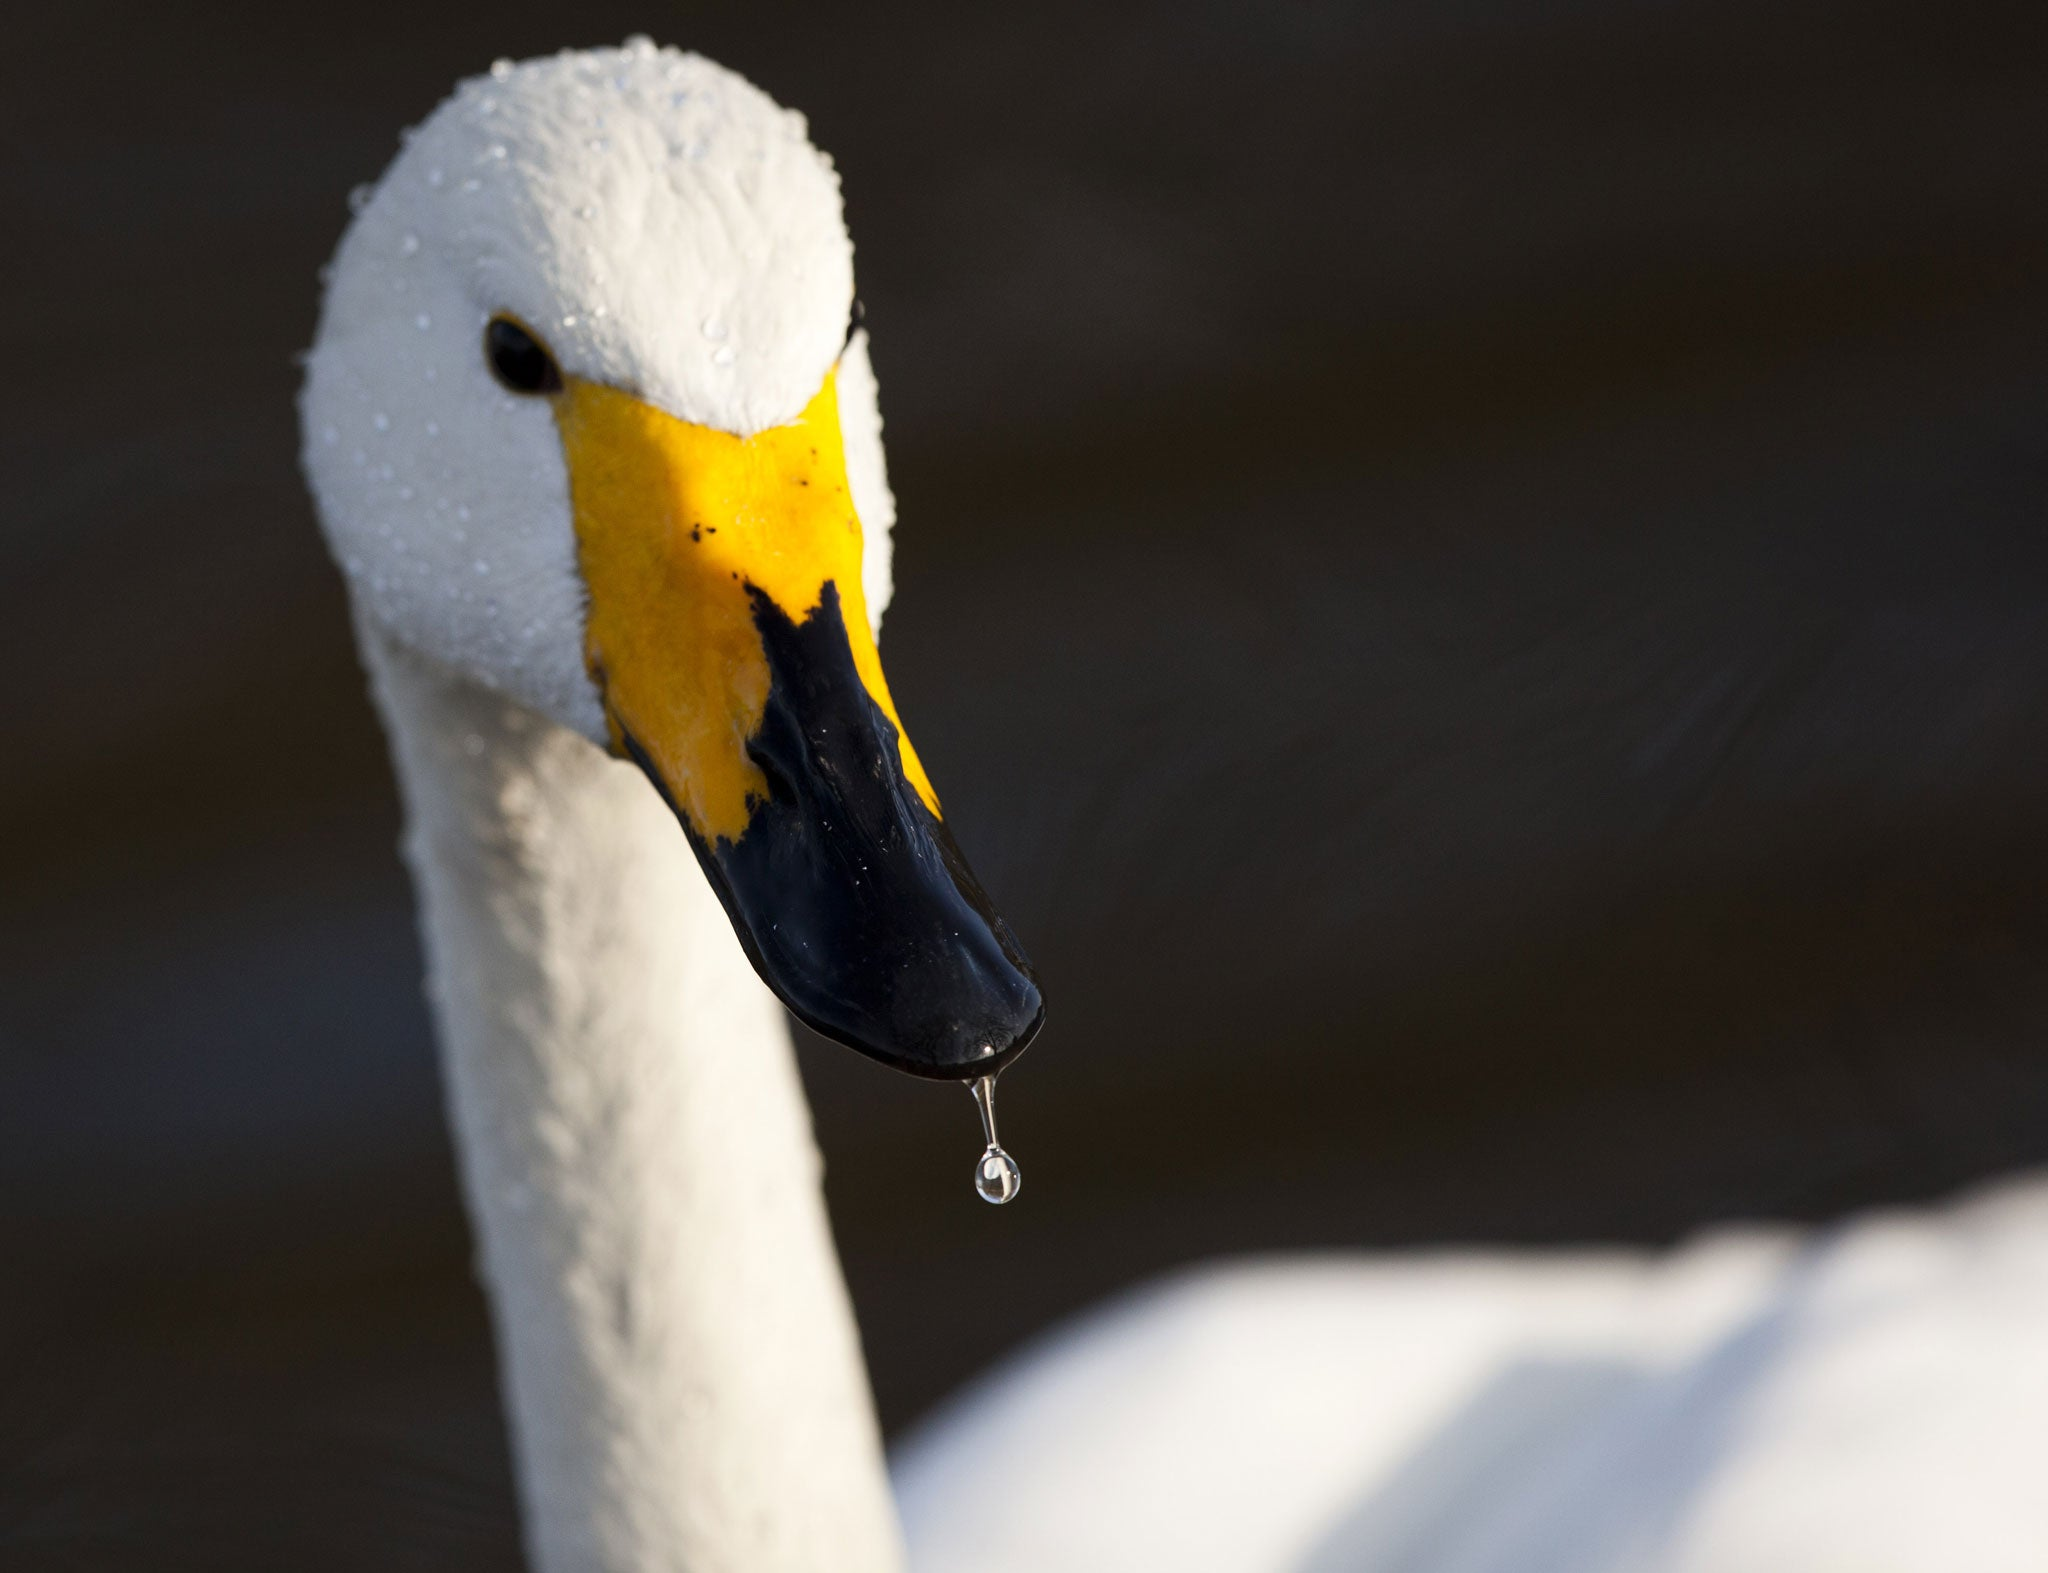 Cambridgeshire Police investigate deaths of 20 swans and ducks   The Independentindependent_brand_ident_LOGOUntitled